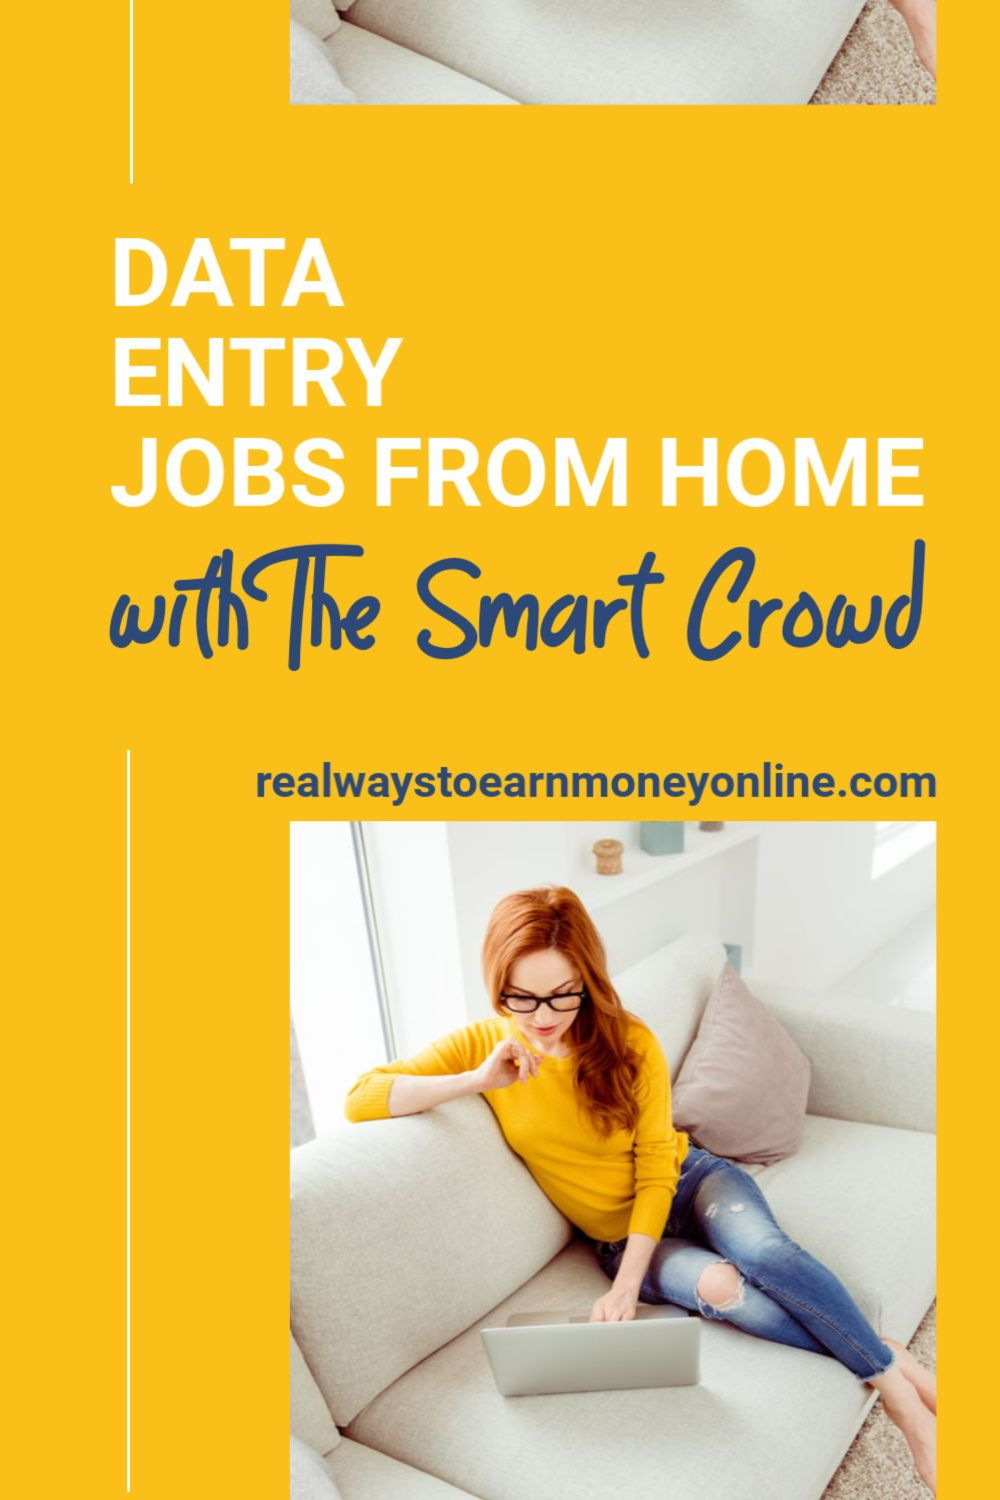 The Smart Crowd Needs Work At Home Data Entry Keyers Best Online